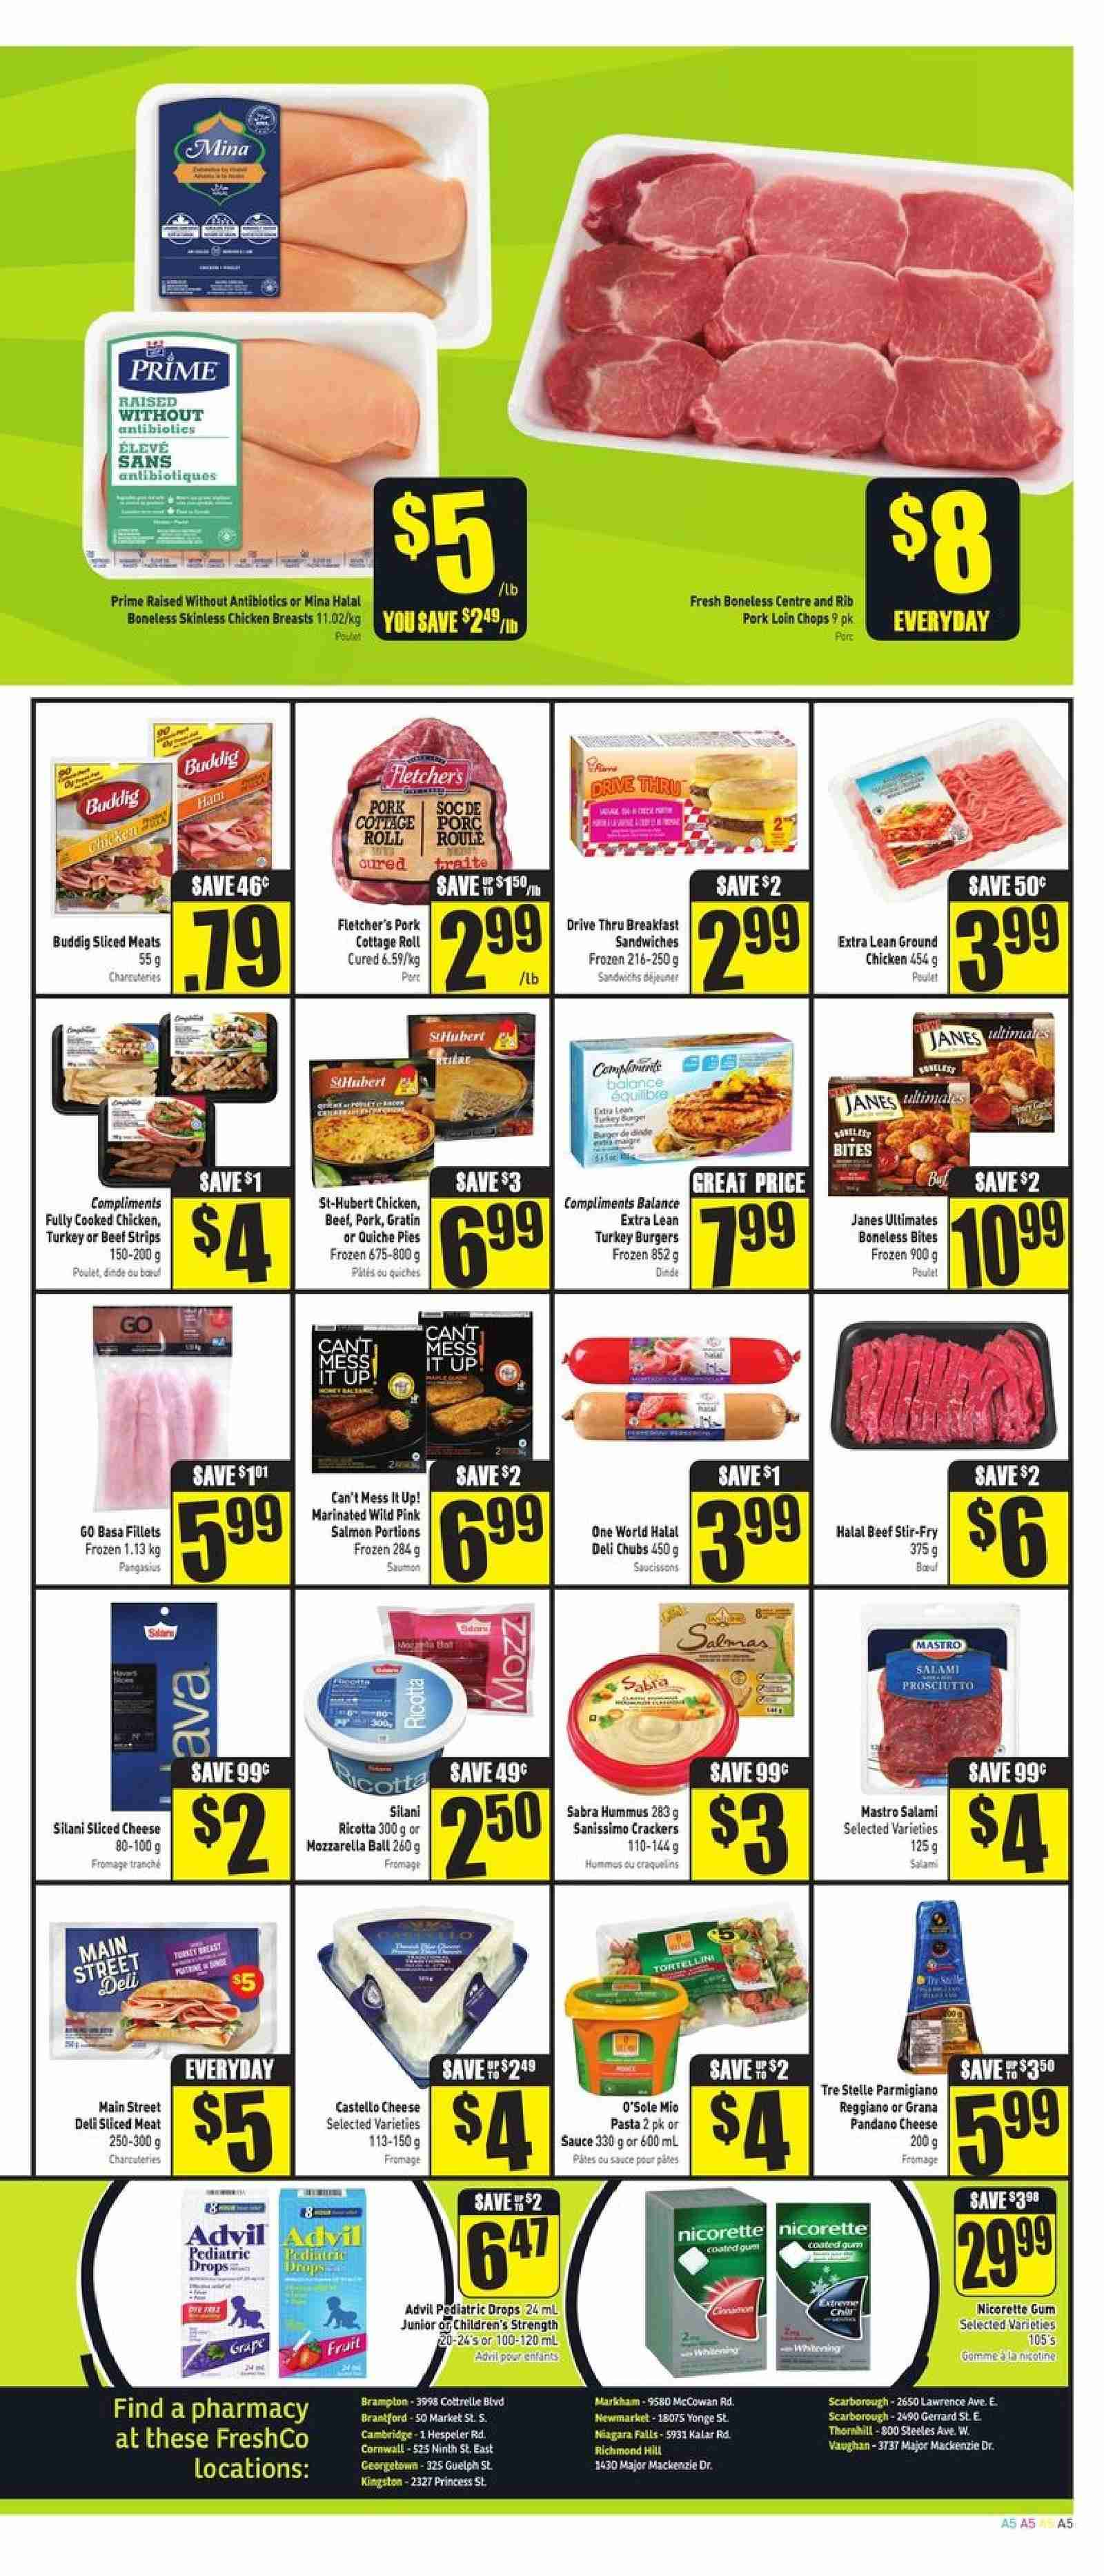 FreshCo. Flyer  - July 26, 2018 - August 01, 2018. Page 5.